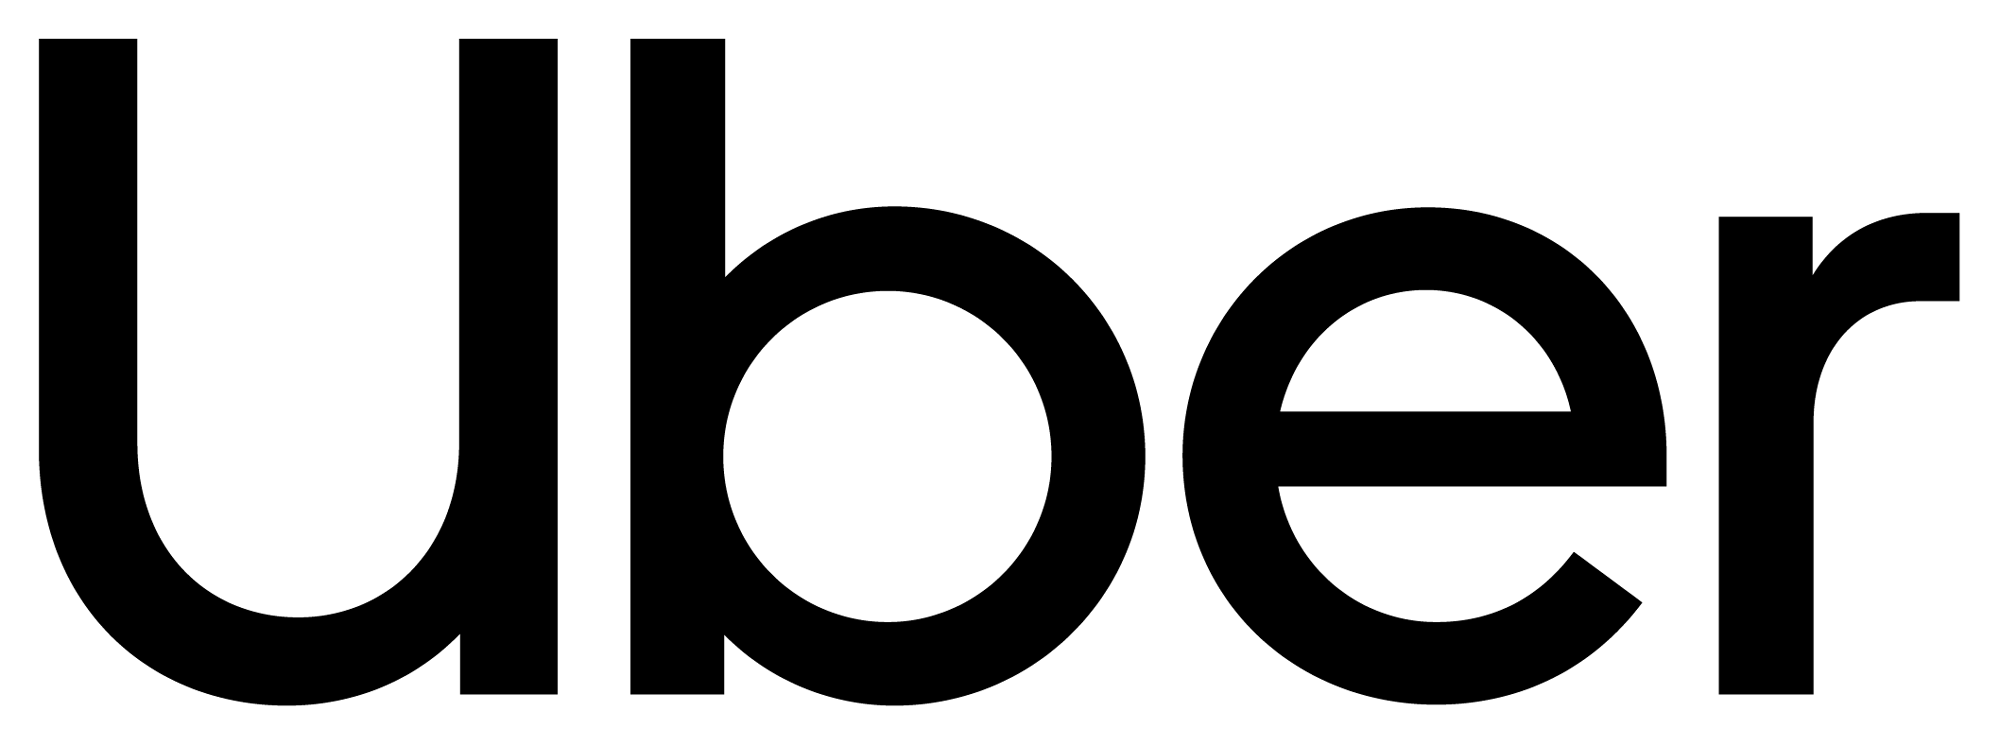 Data Science Manager - Driver Compliance job in Seattle at Uber